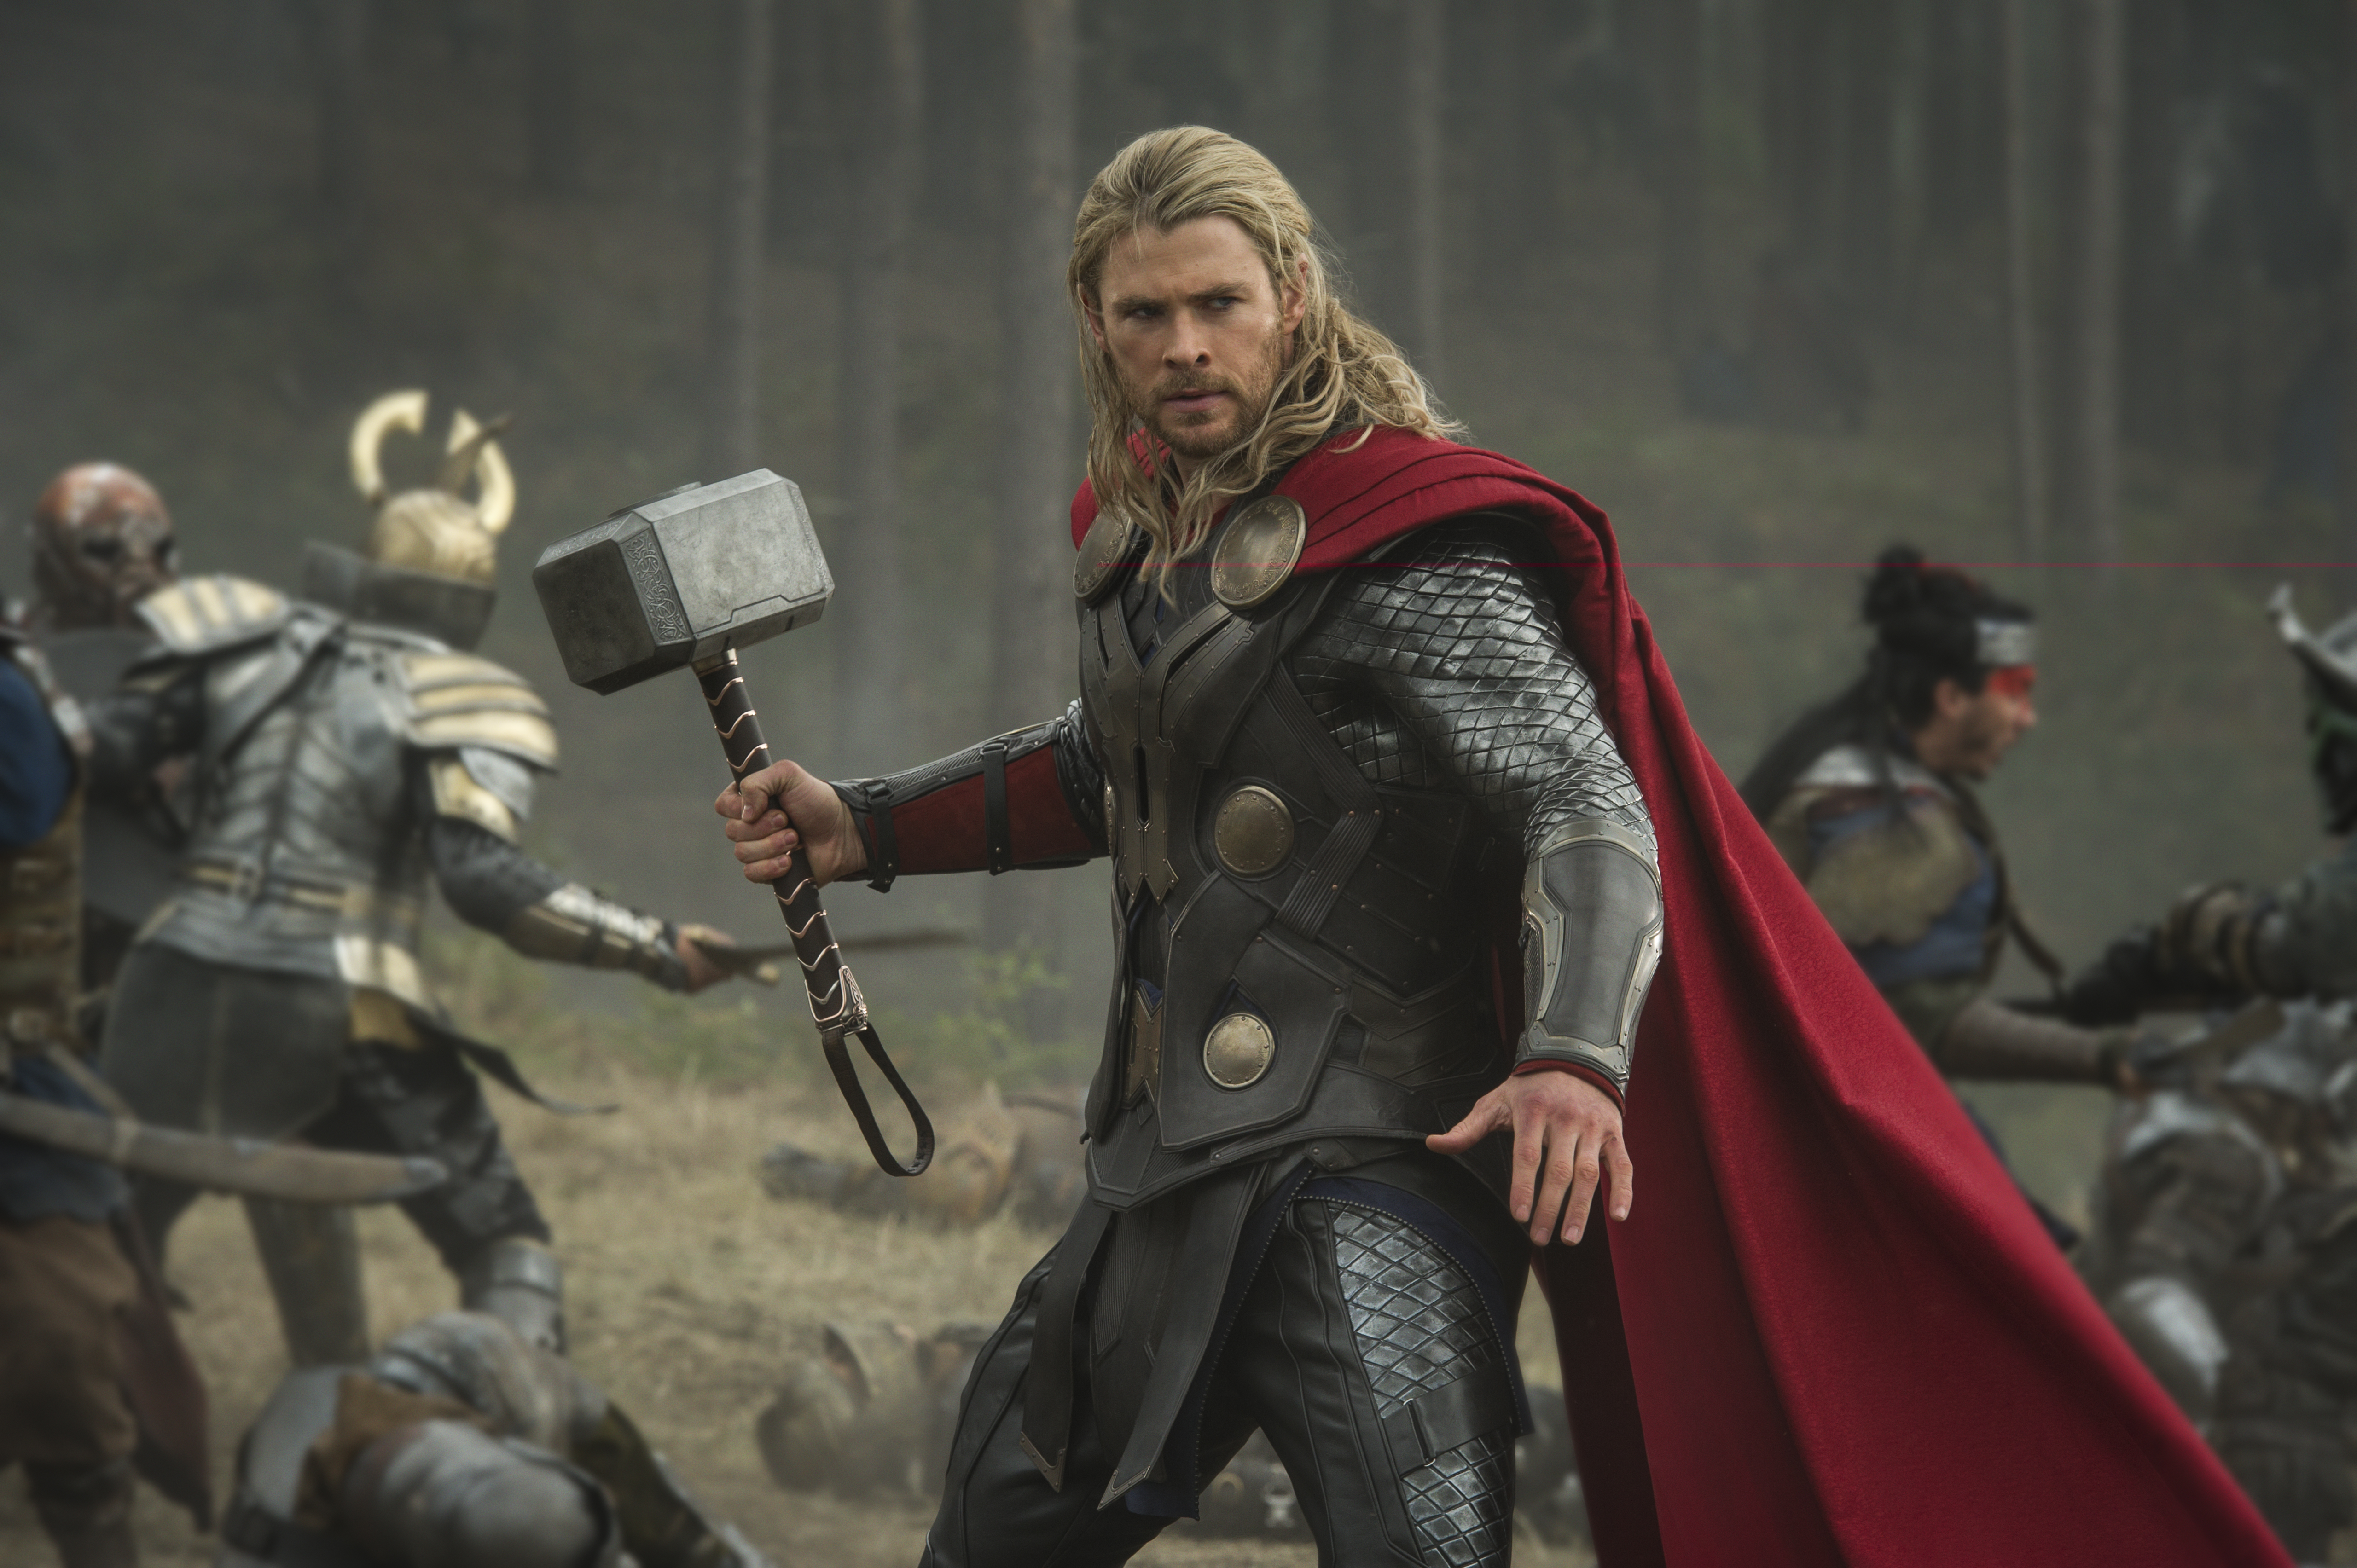 TM 04371 R Teaser Trailer and First Look Images for Thor: The Dark World Released